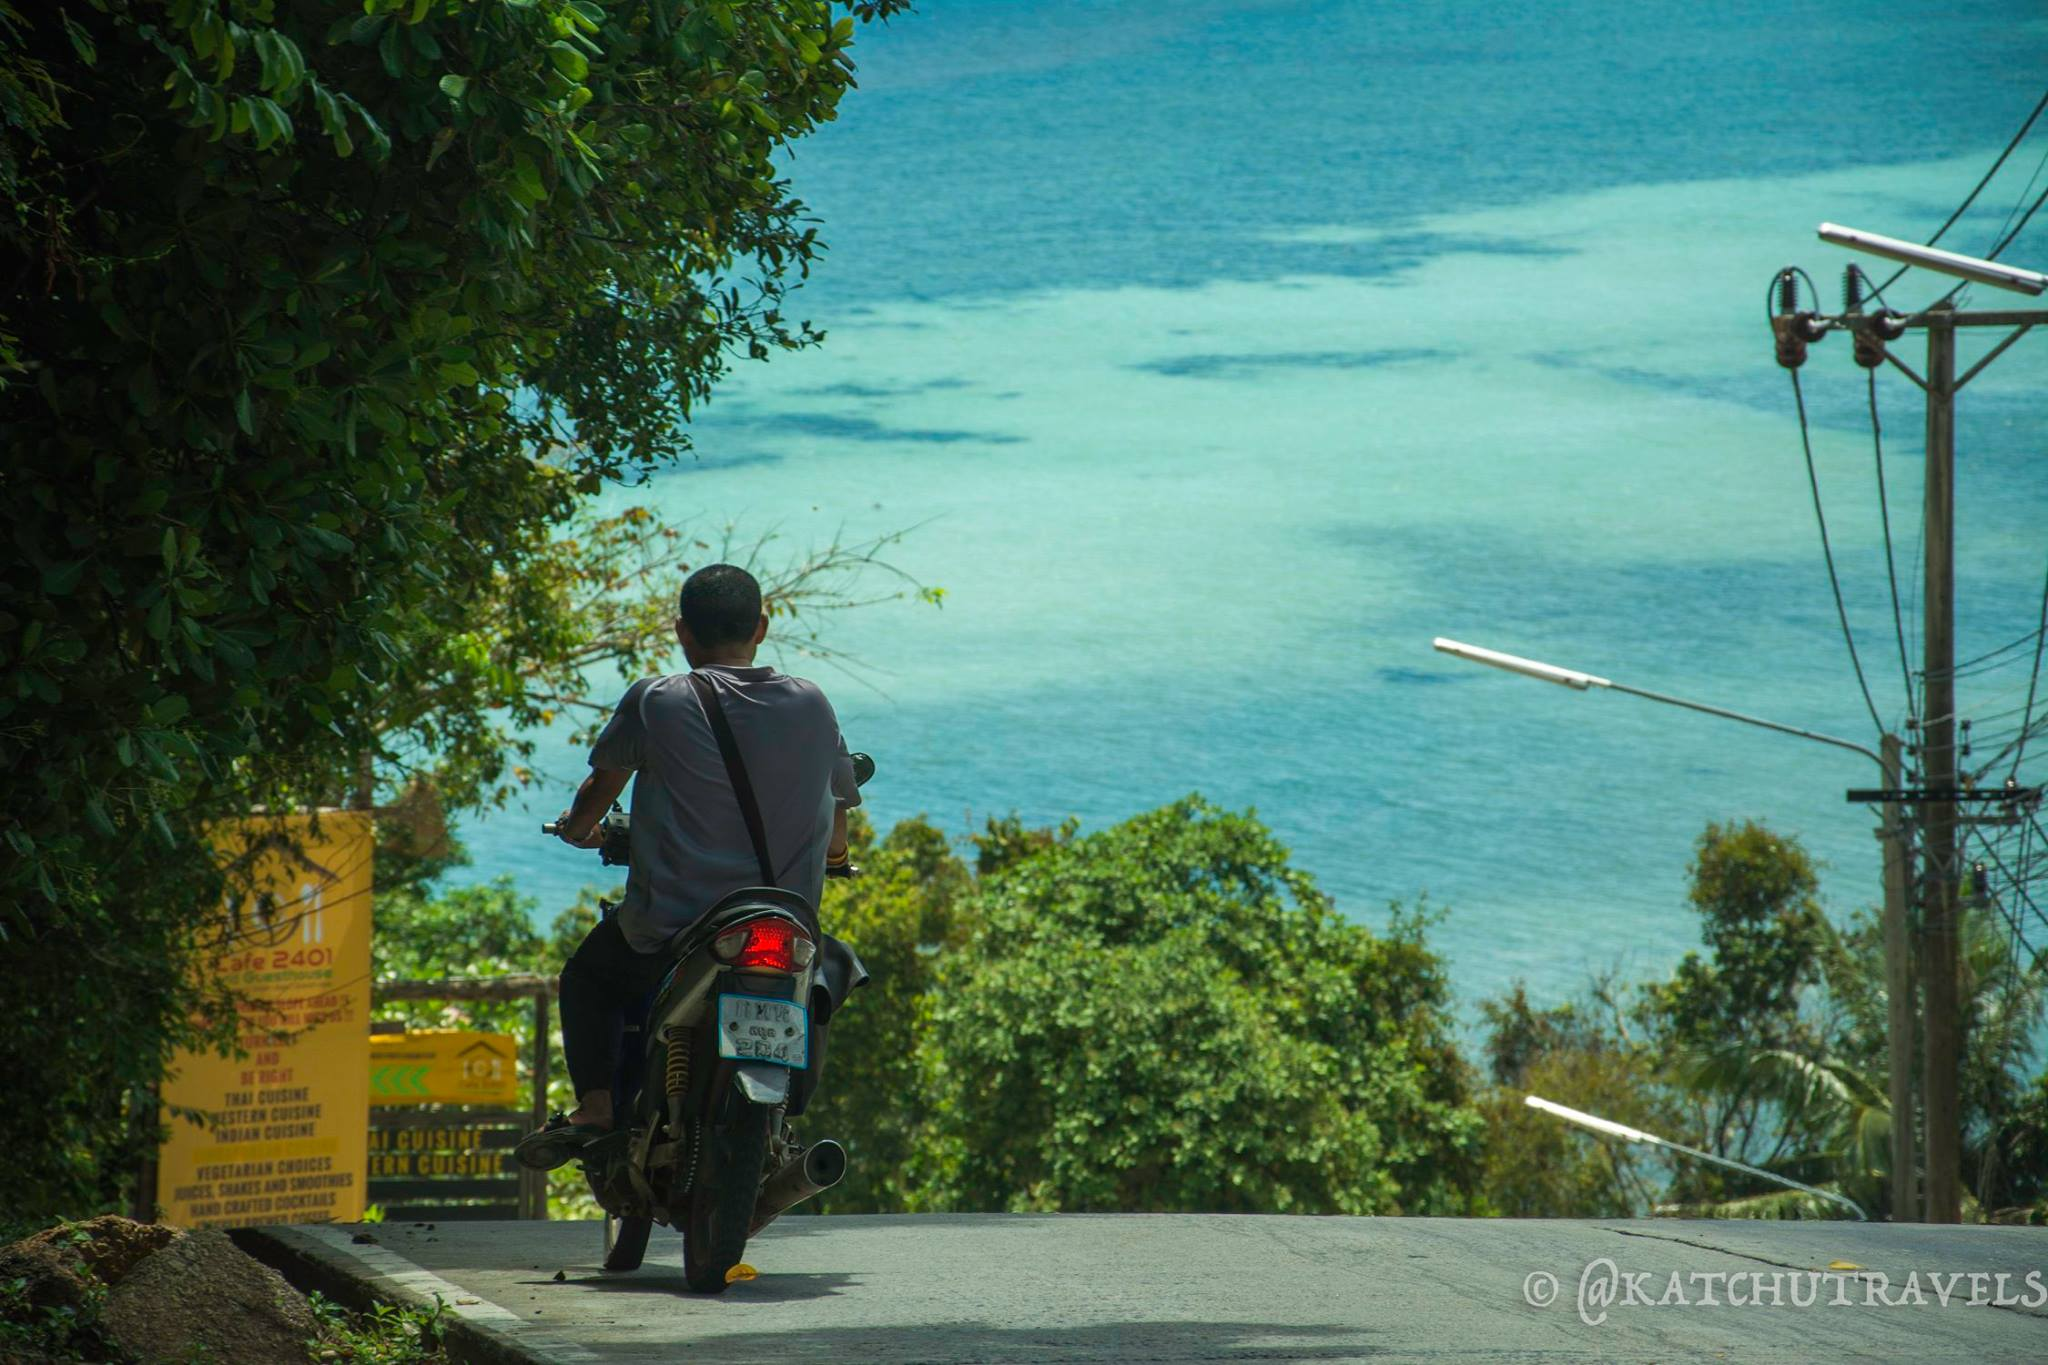 Driving in Koh Phangan With a View of the Sea